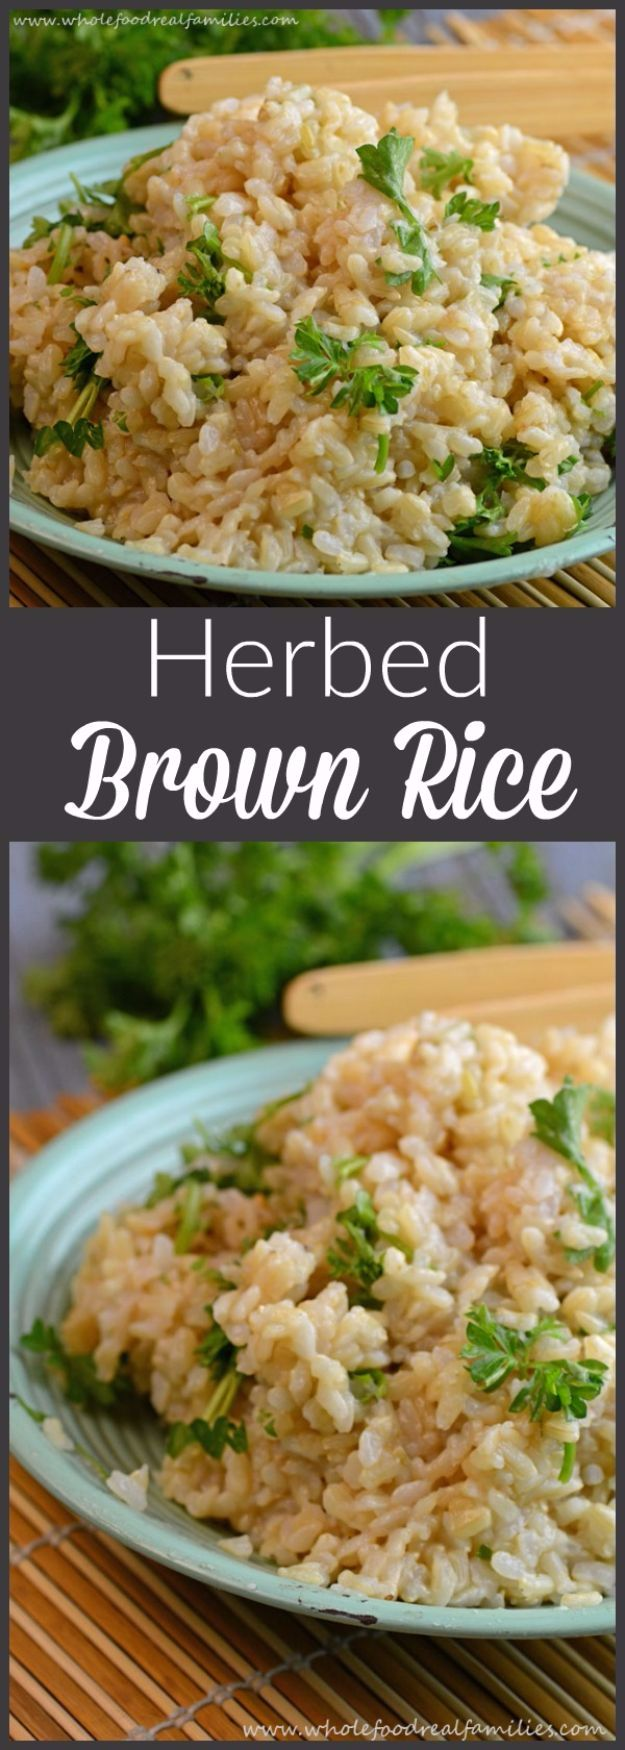 Best Rice Recipes - Herbed Brown Rice - Easy Ideas for Quick Meals Made From a Bag of Rice - Healthy Recipes With Brown, White and Arborio Rice - Cheesy, Fried, Asian, Mexican Flavored Dinner Dishes and Side Dishes - DIY Projects and Crafts by DIY JOY http://diyjoy.com/best-rice-recipes